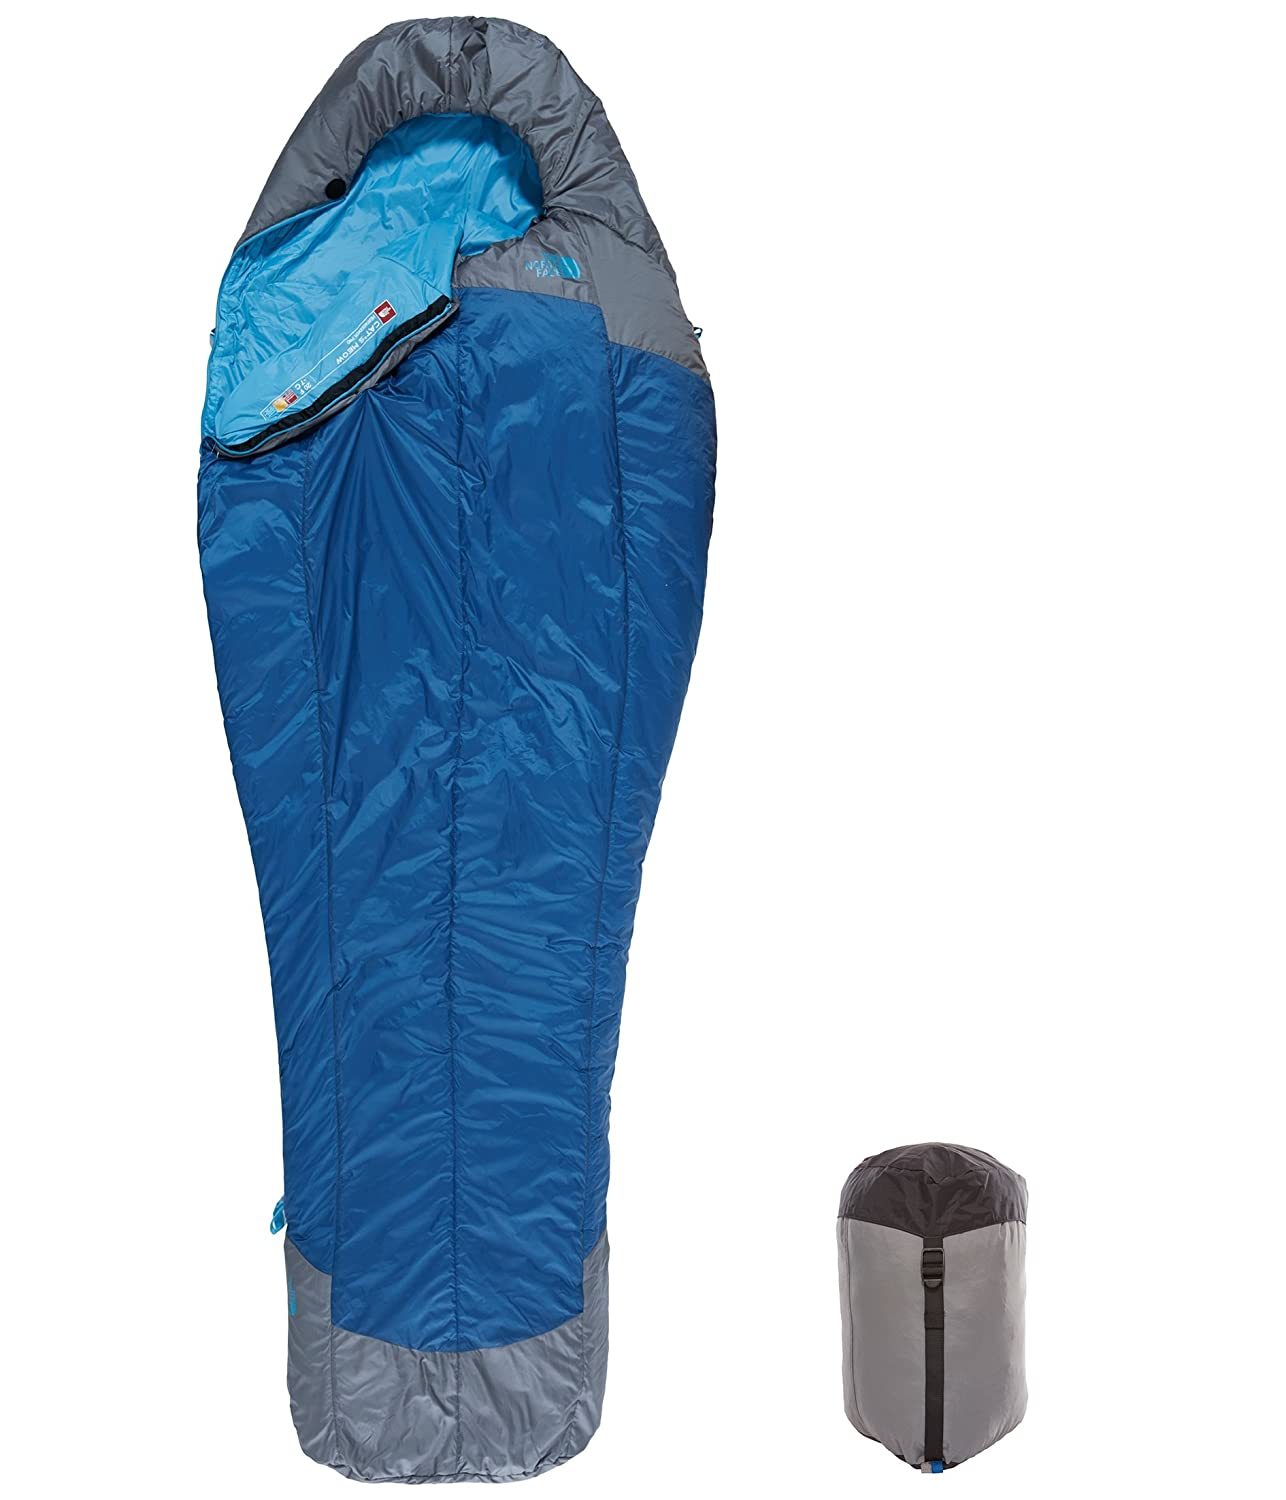 735fa0184 The North Face Cat's Meow Sleeping Bag